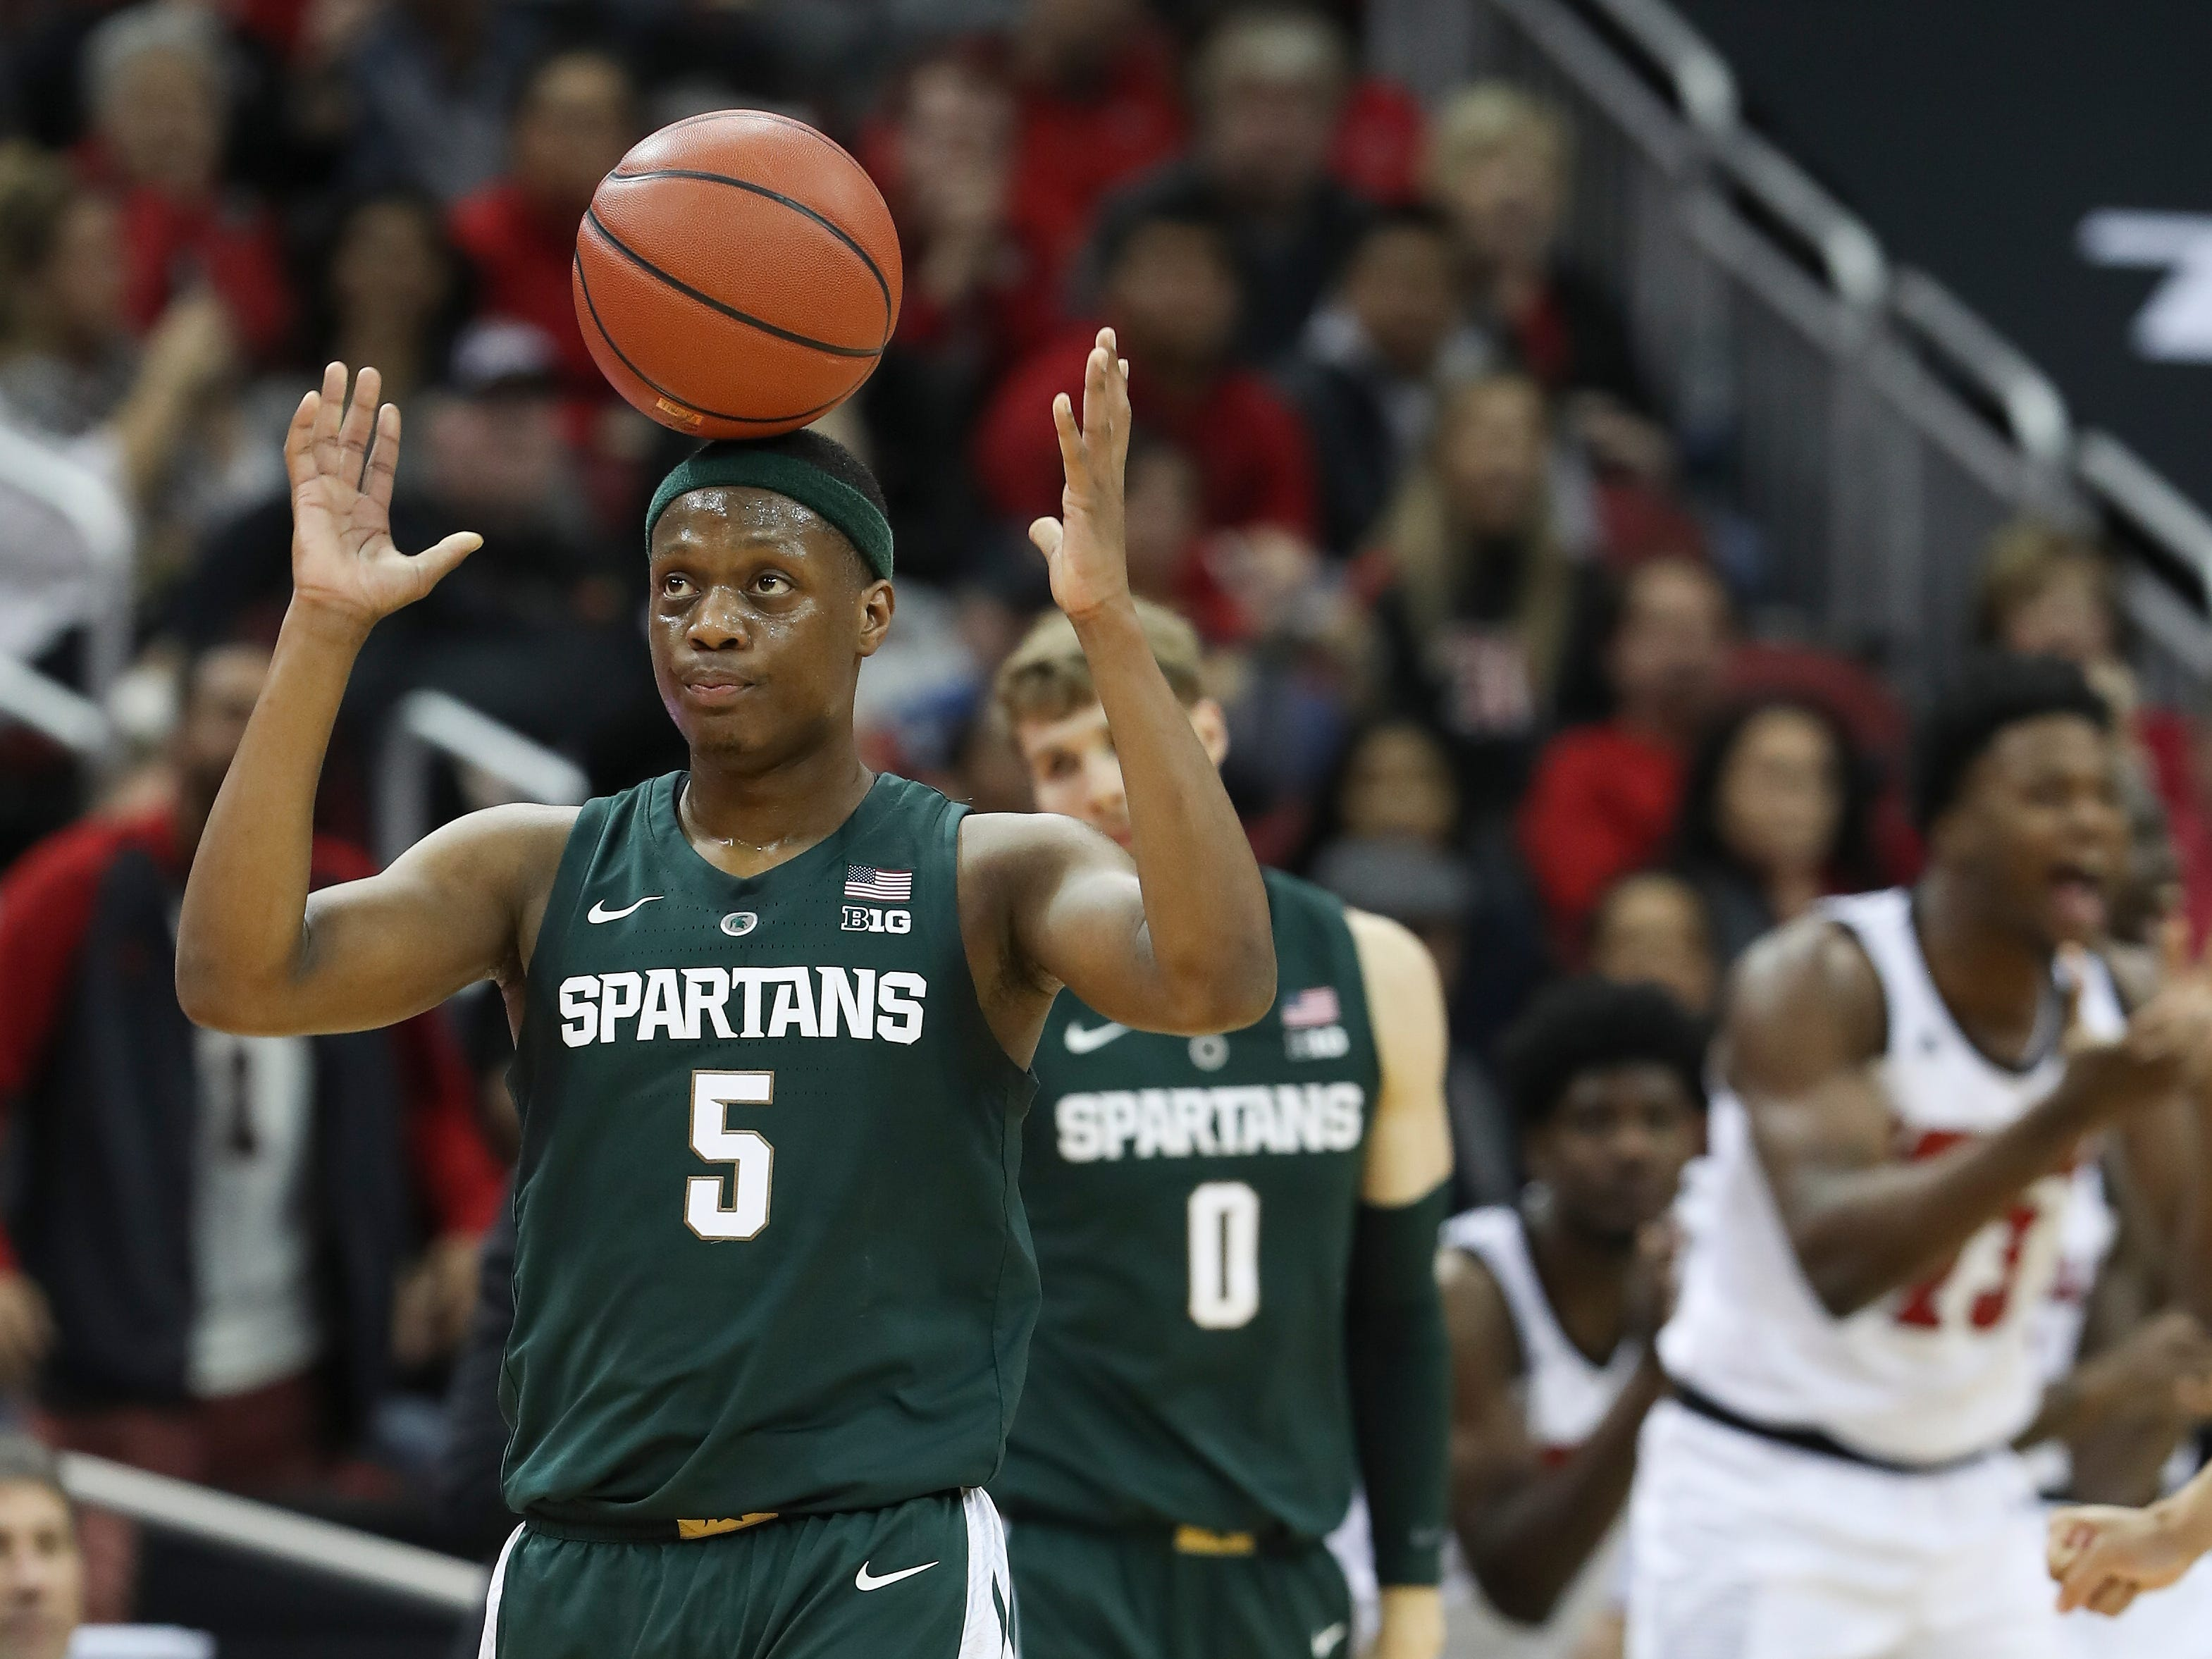 Michigan State's Cassius Winston let the ball balance on his head after a ref made a call against the Spartans during against Louisville, Nov. 27, 2018